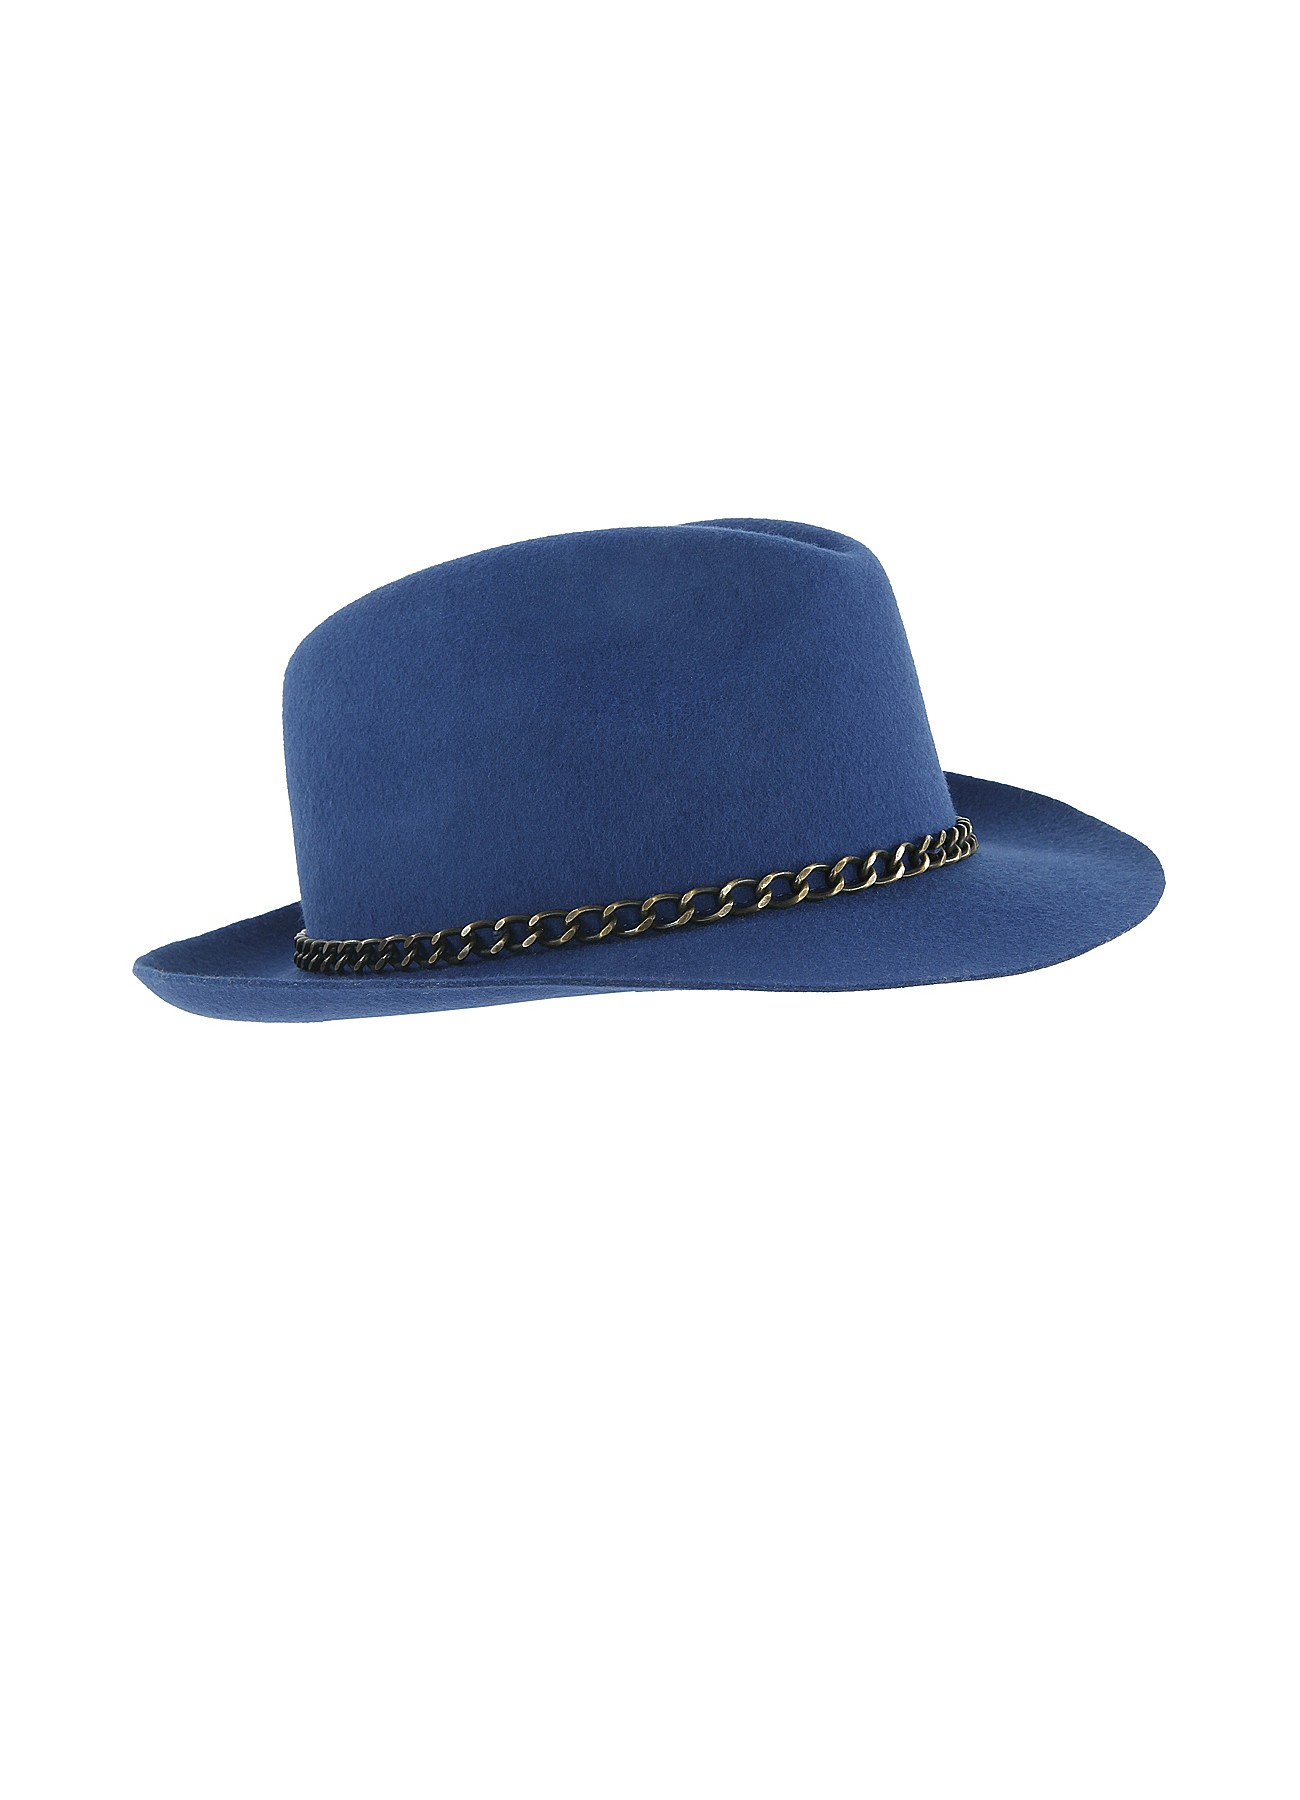 hat for  woman alison jean-Zadig&Voltaire